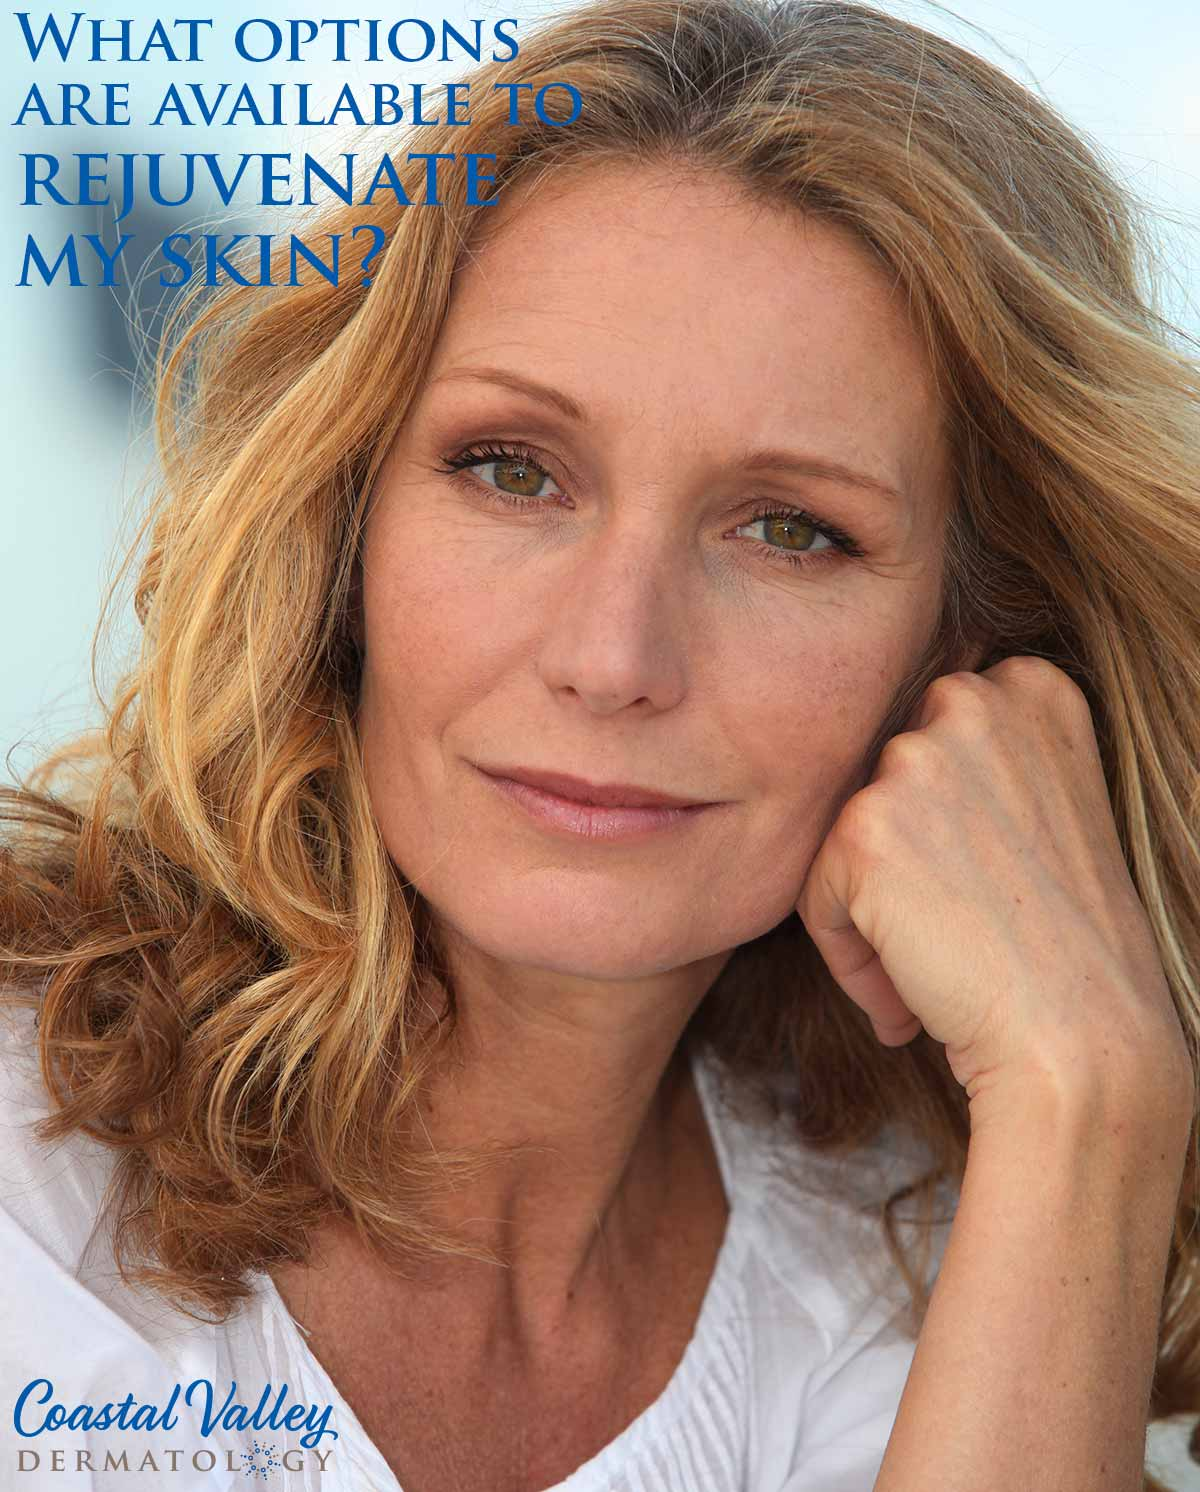 coastal-valley-dermatology-carmel-skin-rejuvenation-options-laser-photo